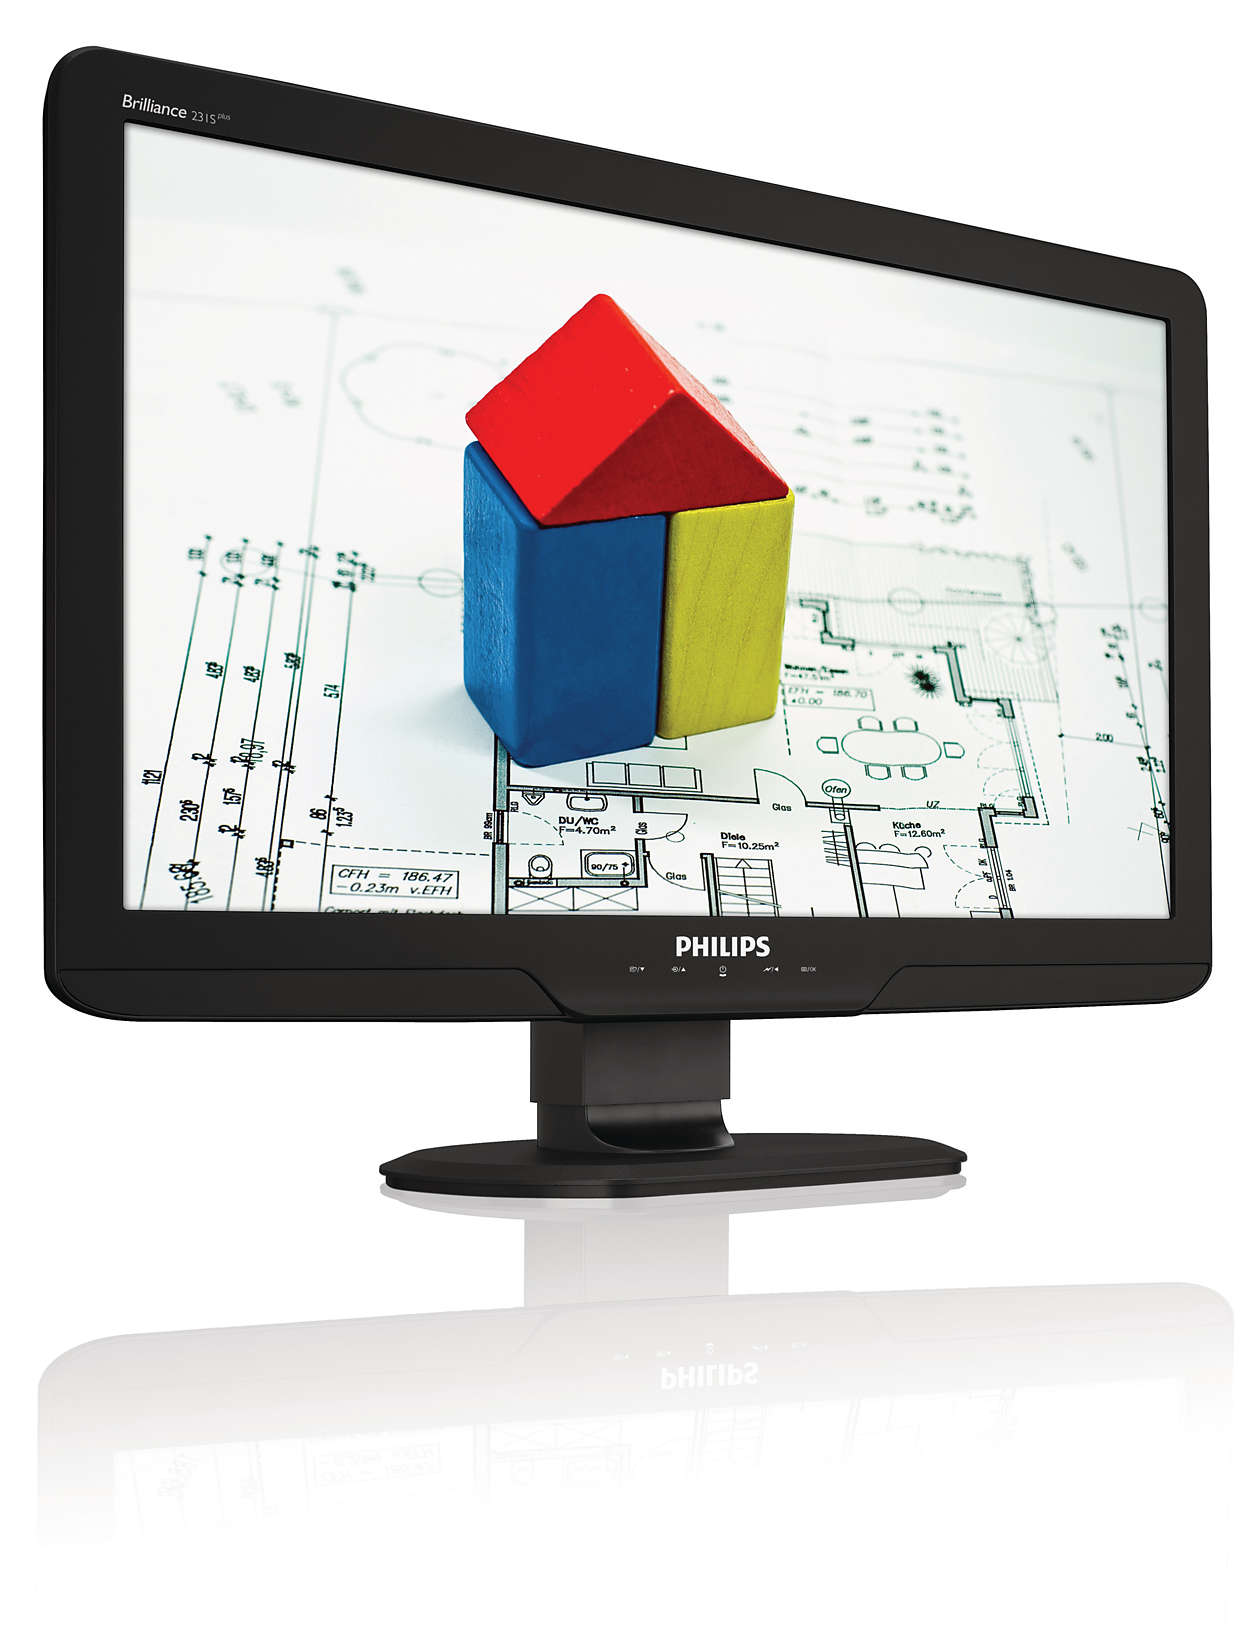 Big ergonomic display enhances productivity